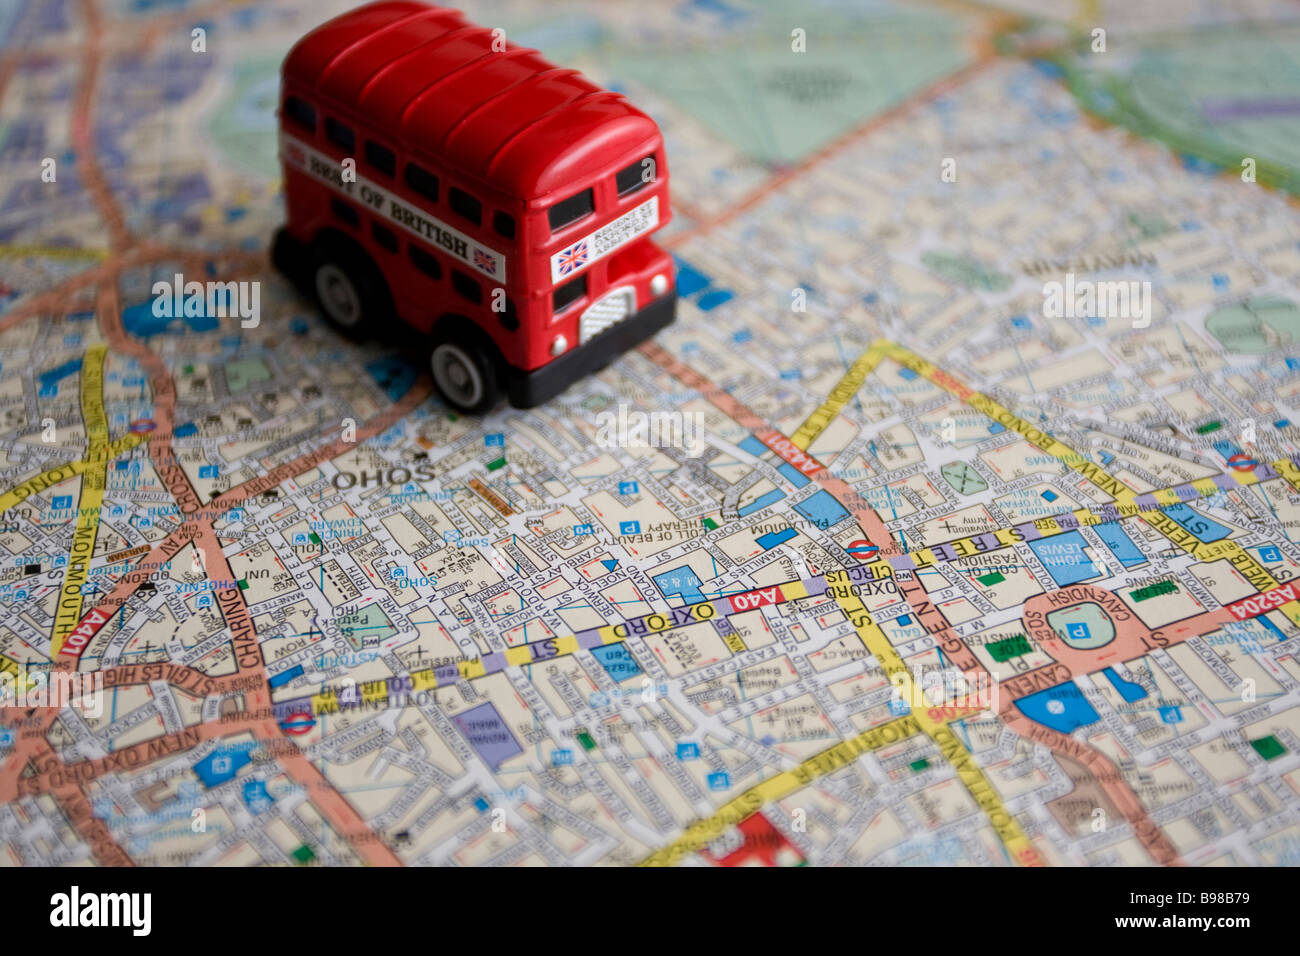 red double decker toy bus on london central map stock image